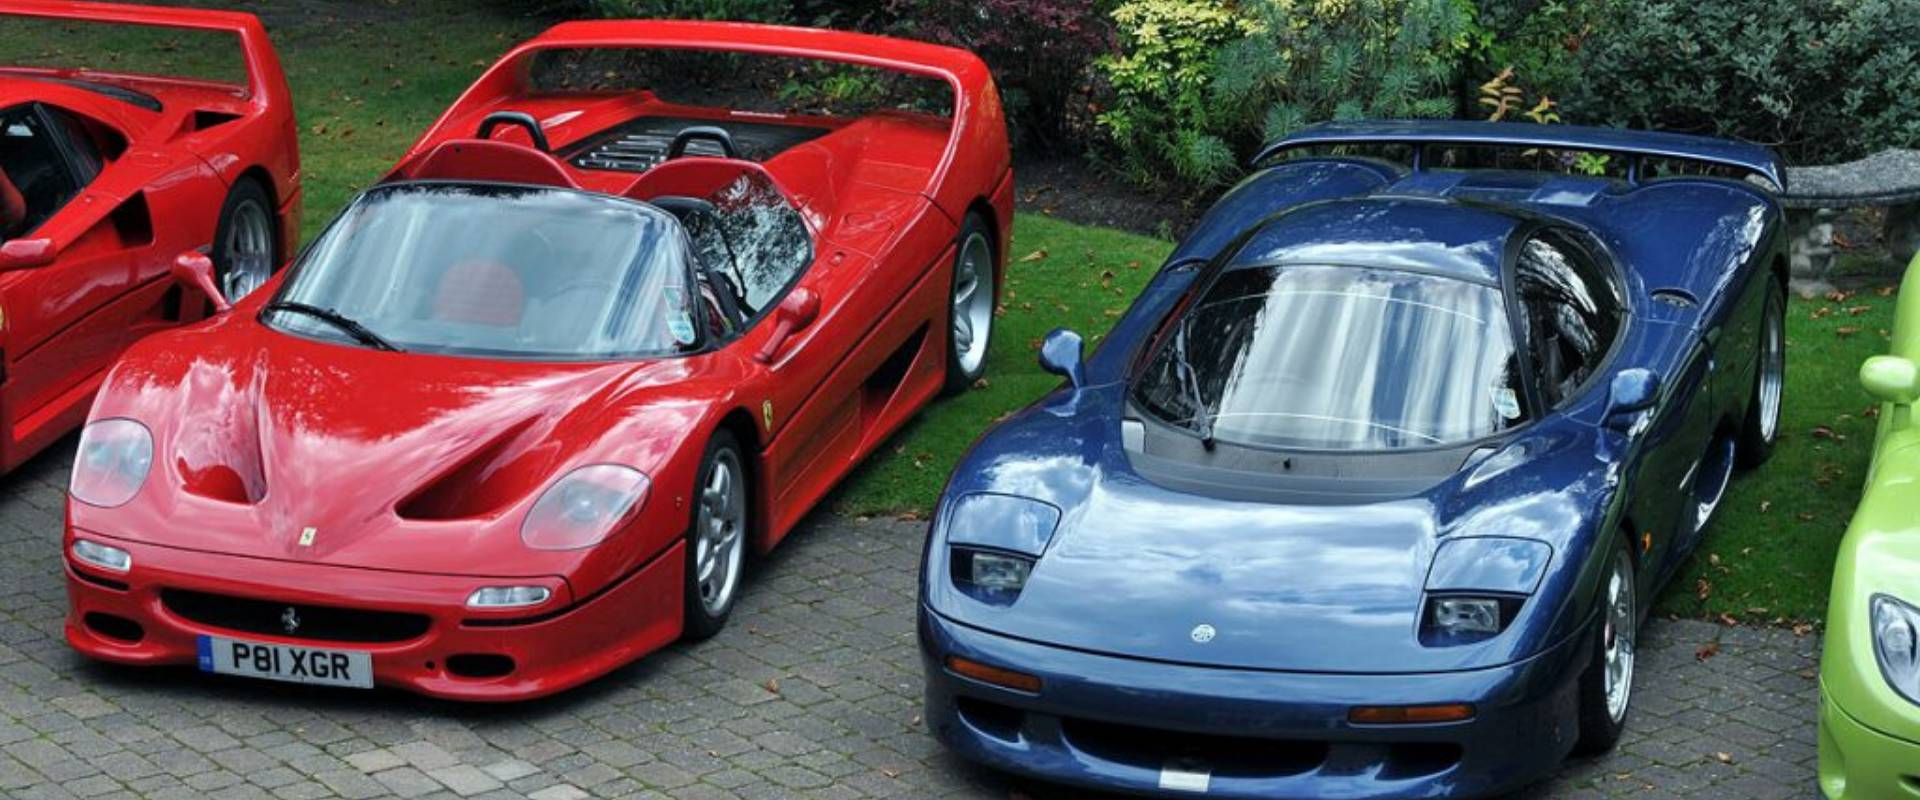 Car Collecting Journey Ferrari F50 to the Jaguar XJR-15